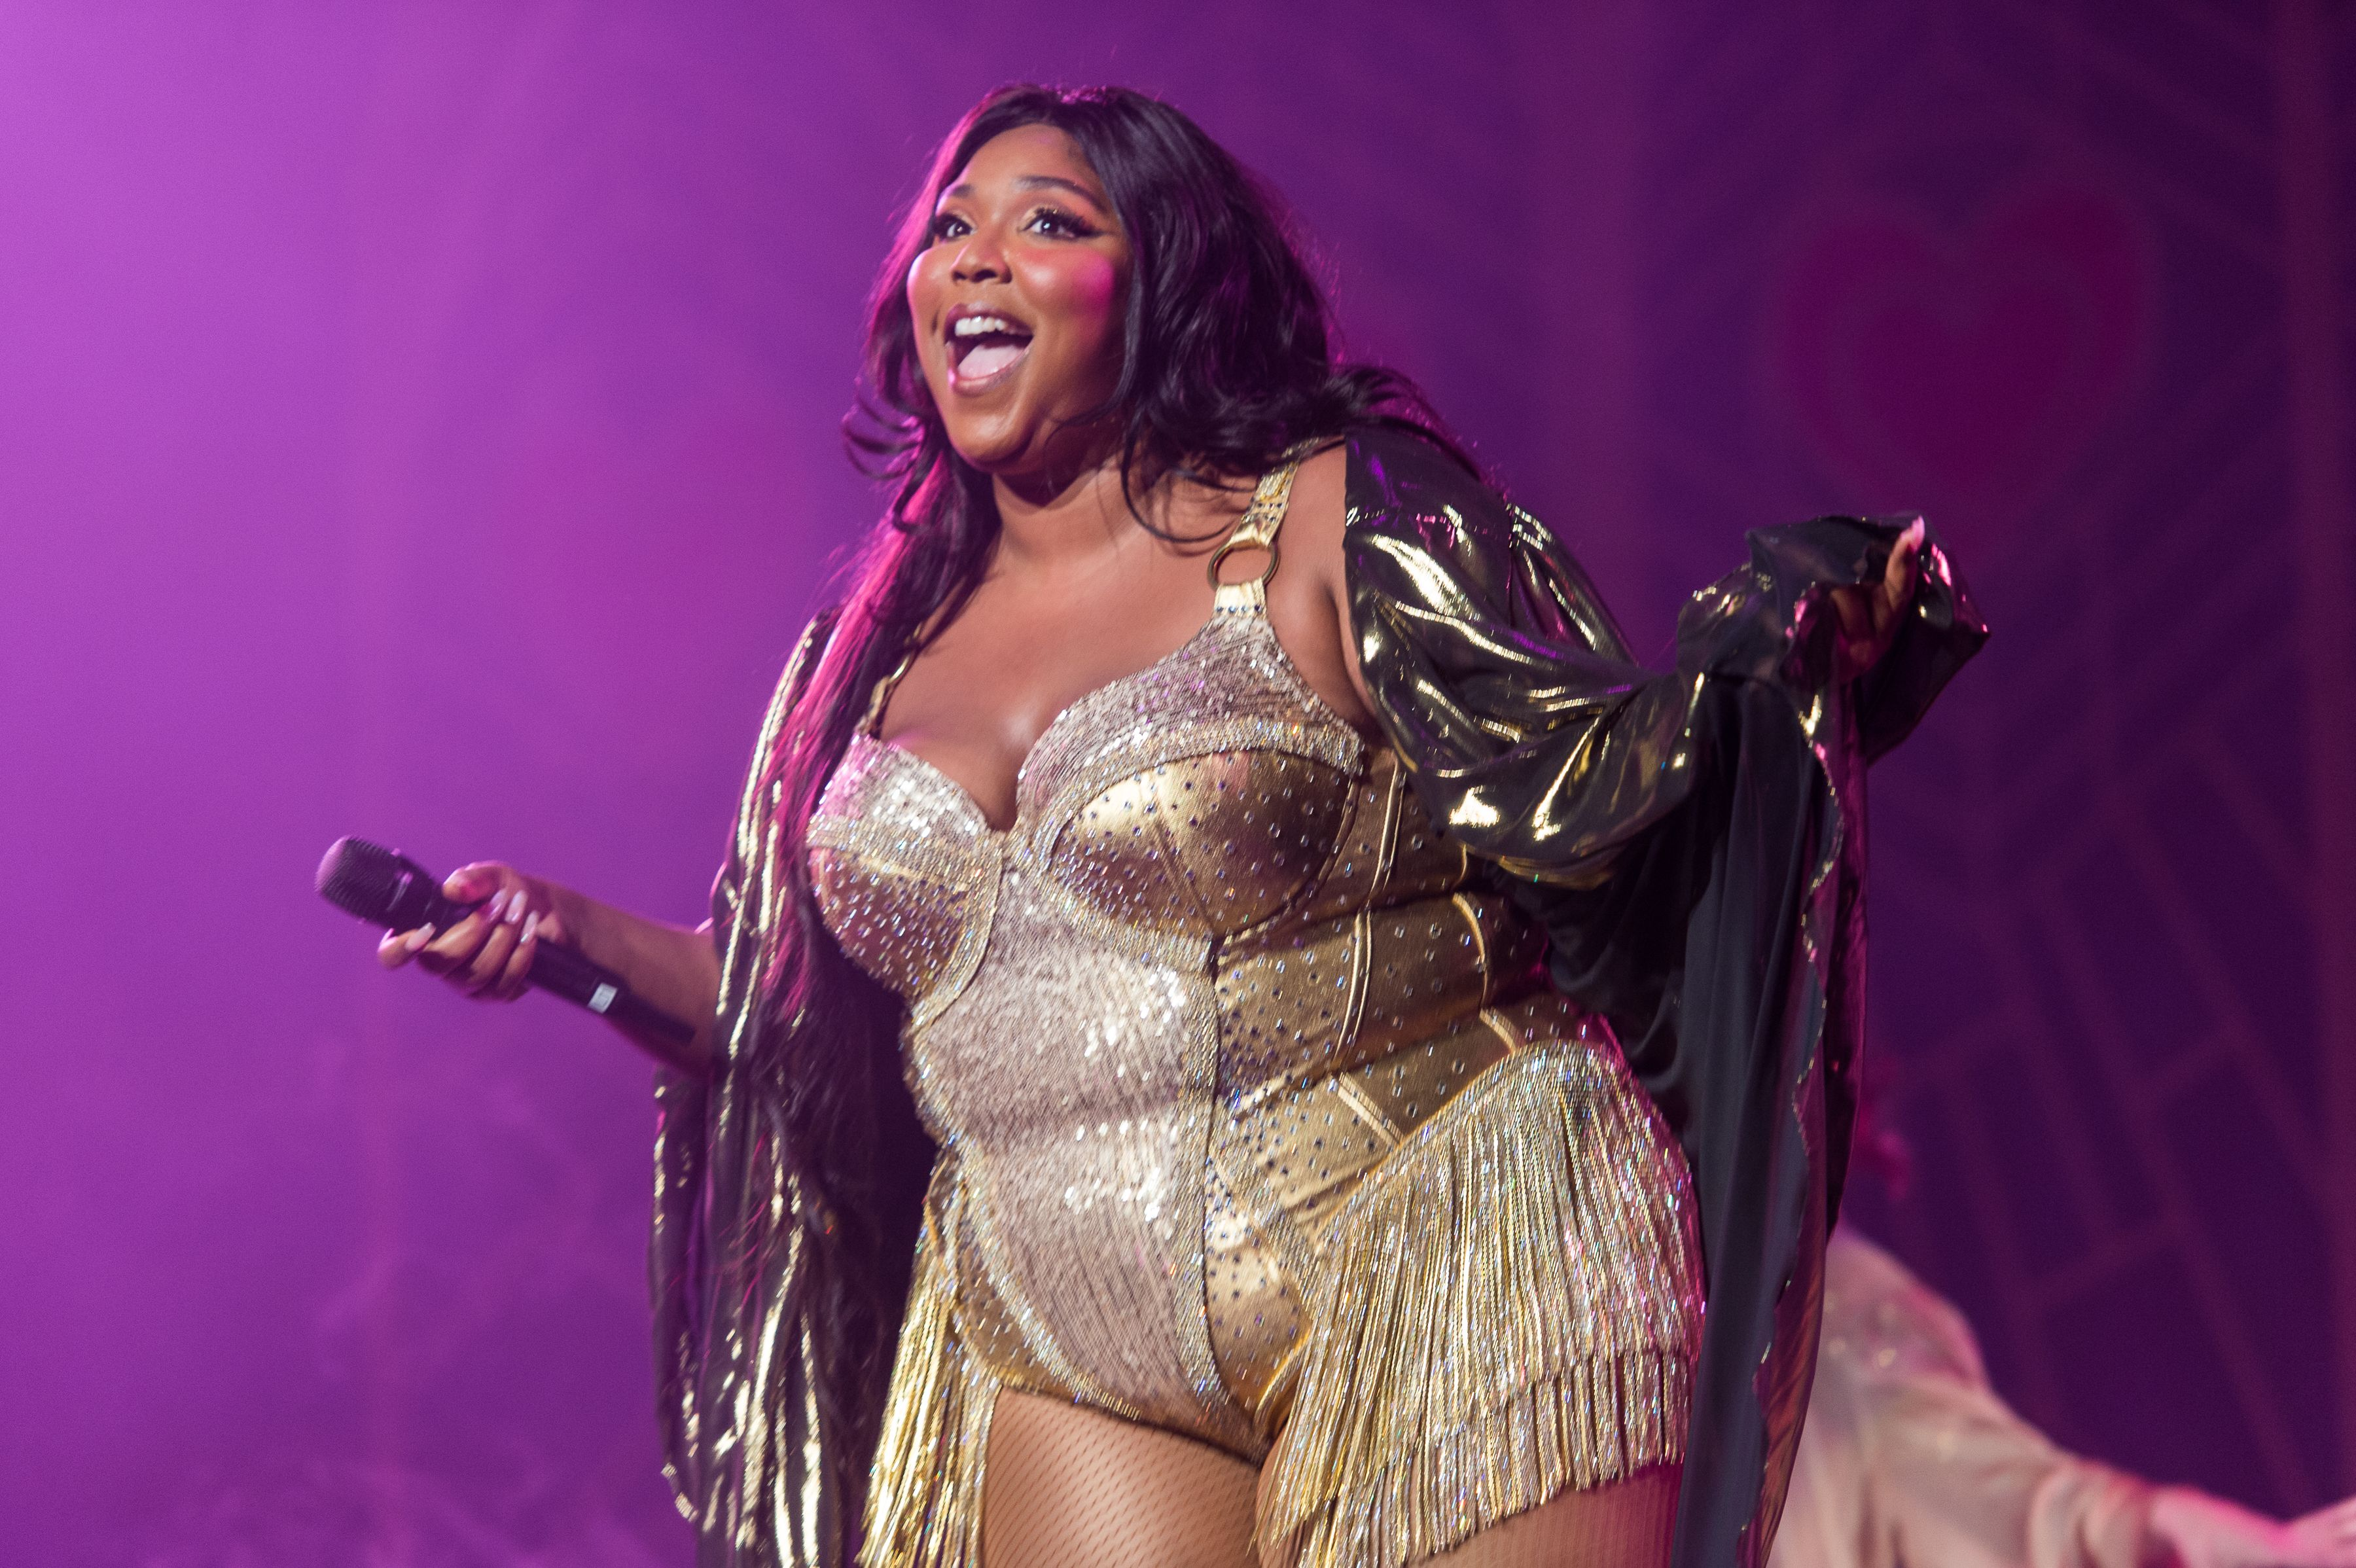 Lizzo rocks a gold fringe outfit on stage at a concert.